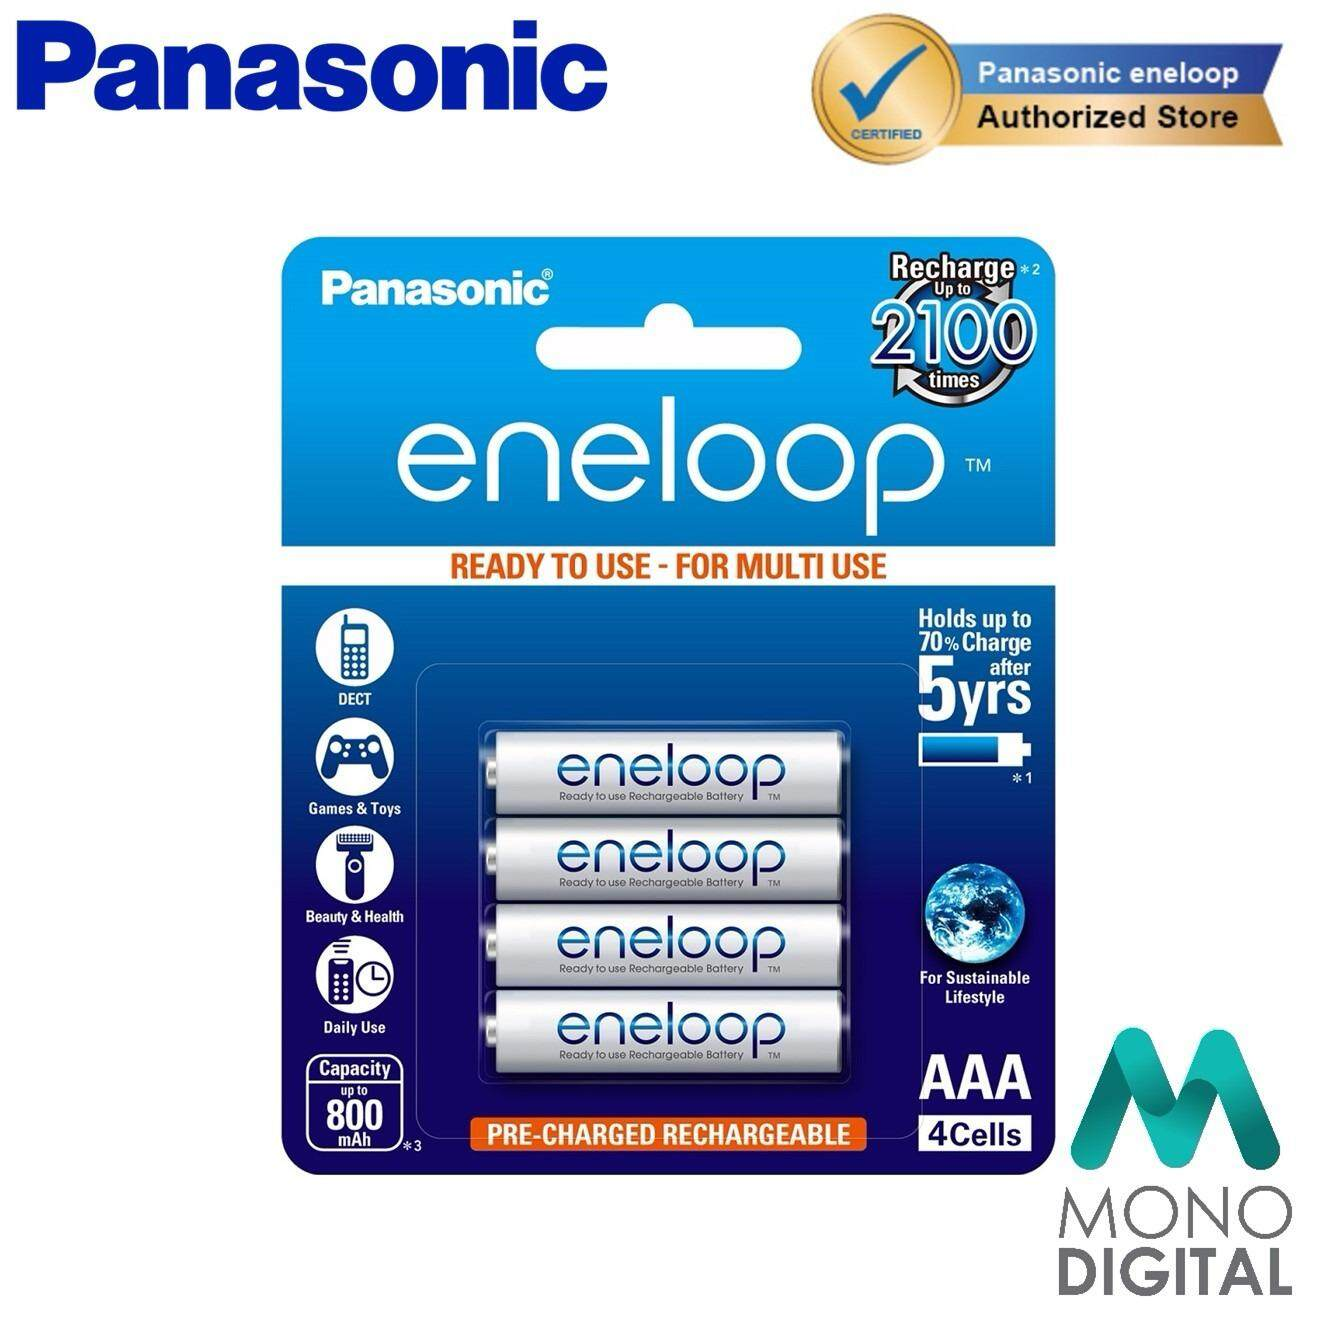 Panasonic Eneloop AAA 800mah Rechargeable Battery Pack of 4 (Original) Malaysia